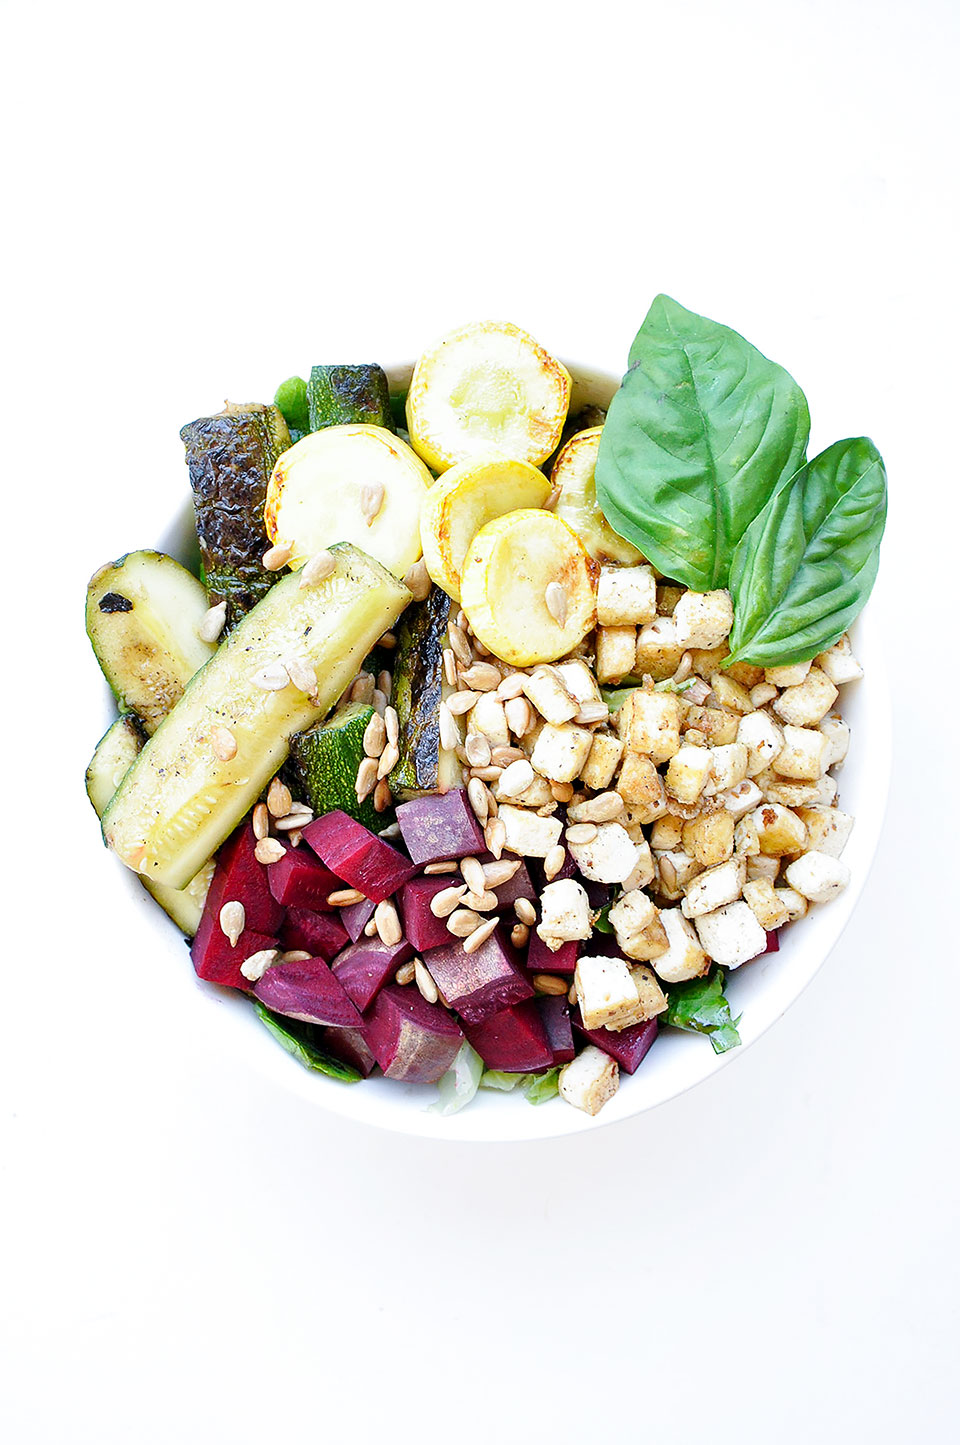 GRILLED ZUCCHINI BOWLS with BASIL YOGURT DRESSING   Grilled zucchini bowls with basil yogurt dressing is an easy gluten-free and vegan meal prep recipe. With beets, tofu, and topped with sunflower seeds. Perfect for summer.   LOVELEAF CO. #mealprep #basil #bowls #salad #saladrecipes #summer #healthydressing #tofu #zucchinisalad #beets #easyrecipe #mealprepping #saladrecipe #bowl